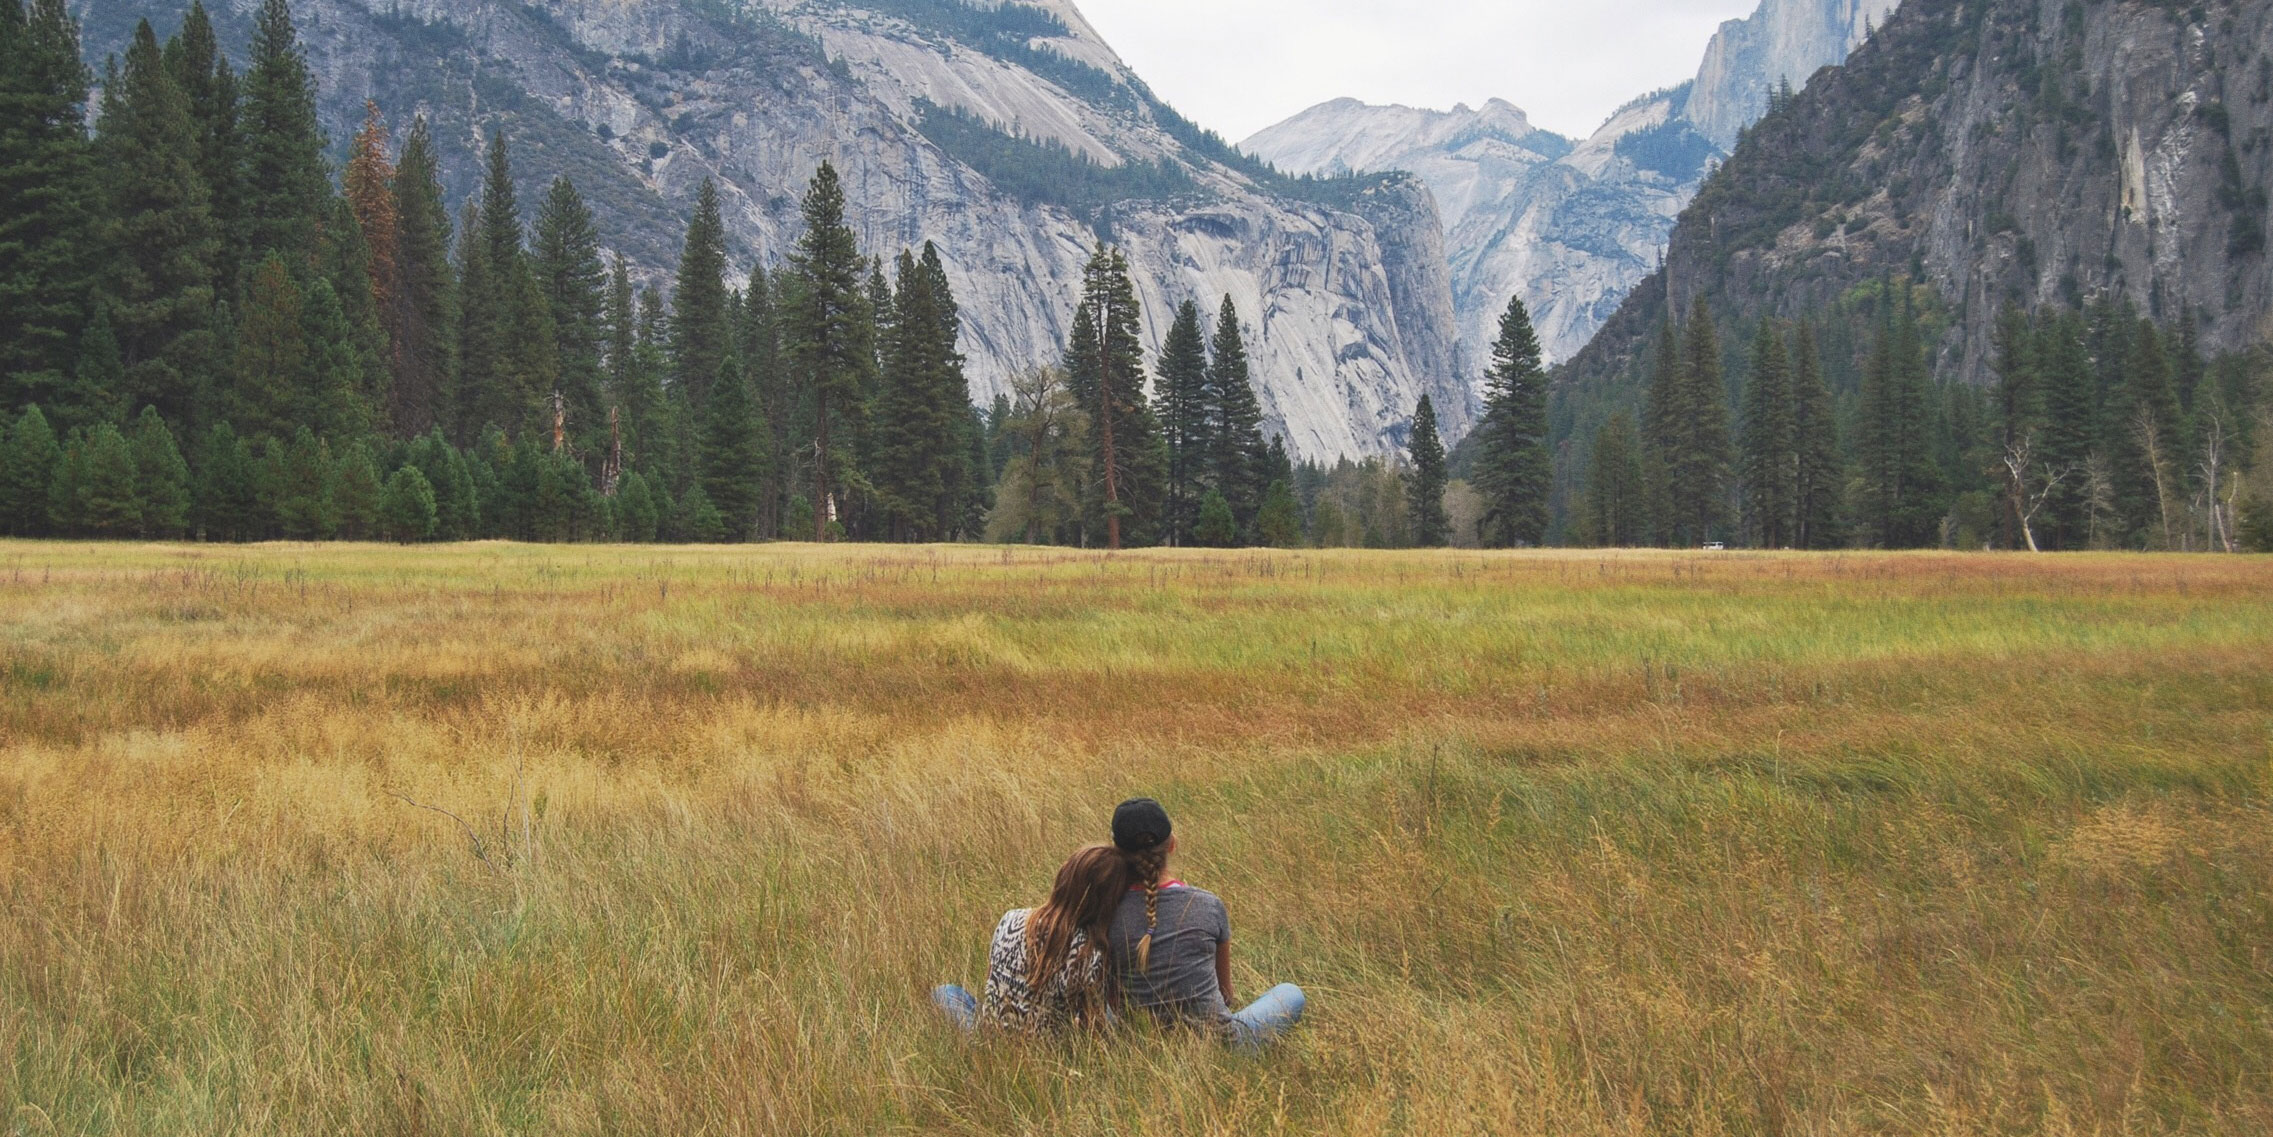 two people sitting in field